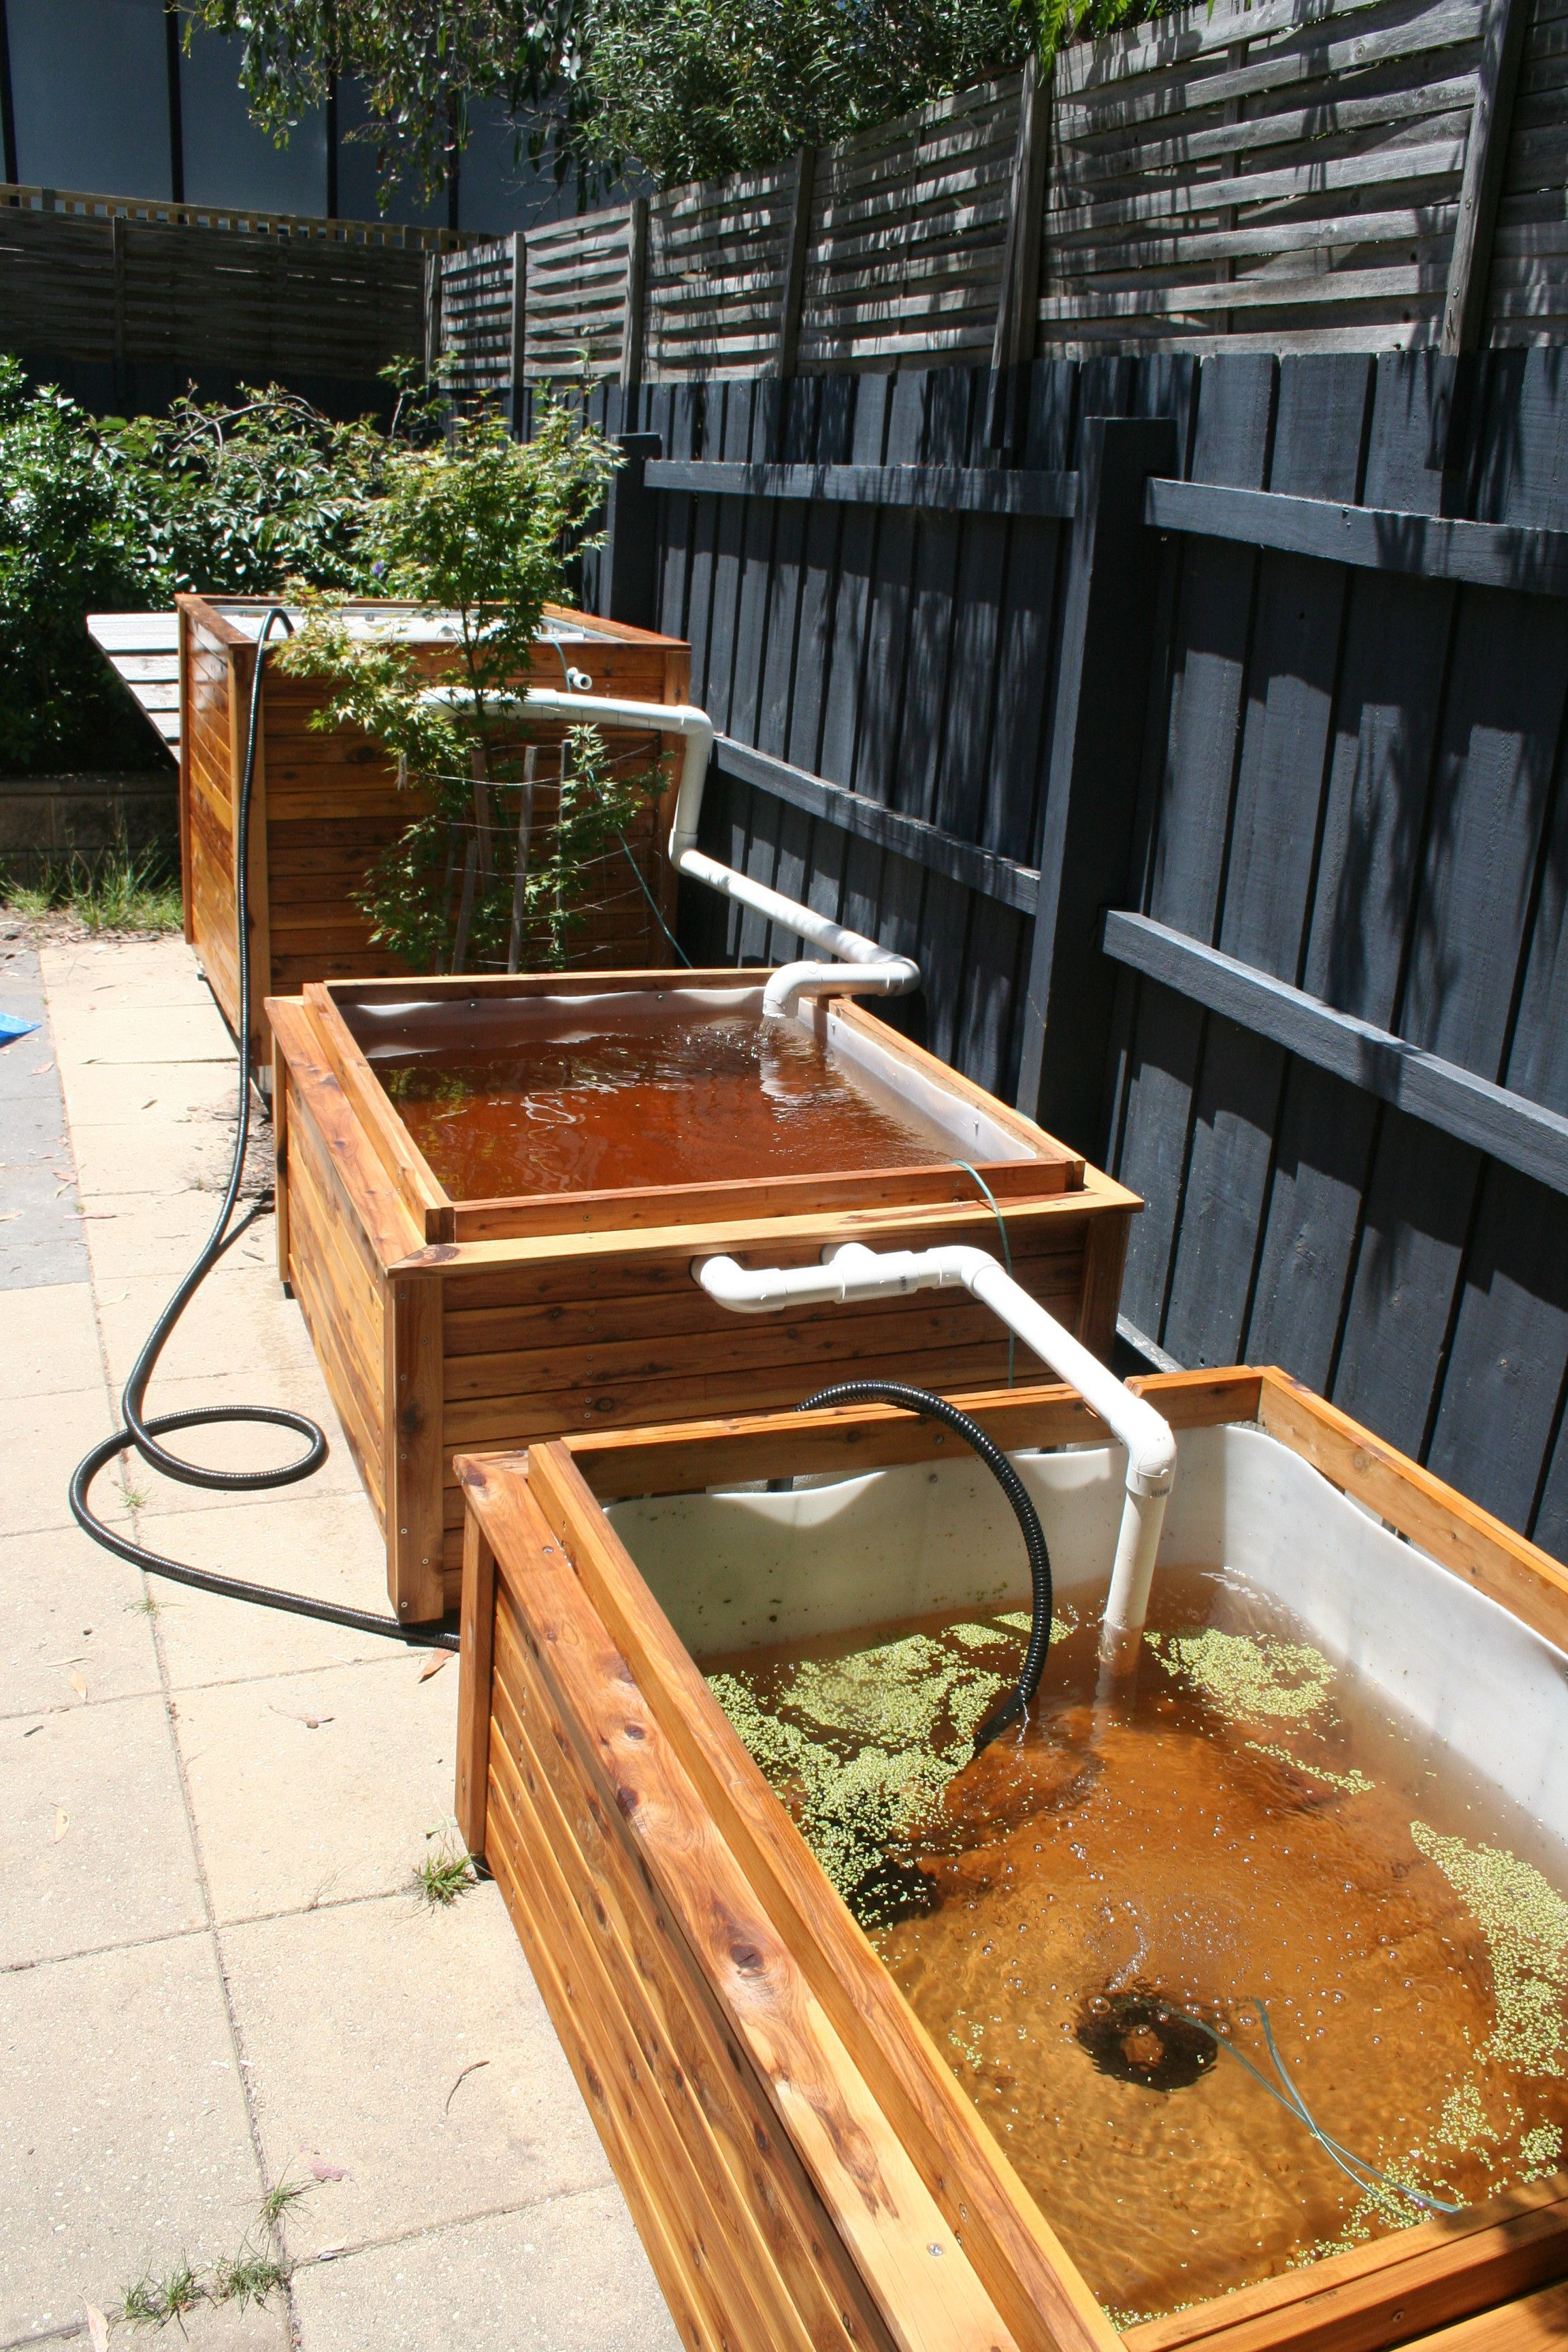 Could the water return from the plants to the fish be made into some ...